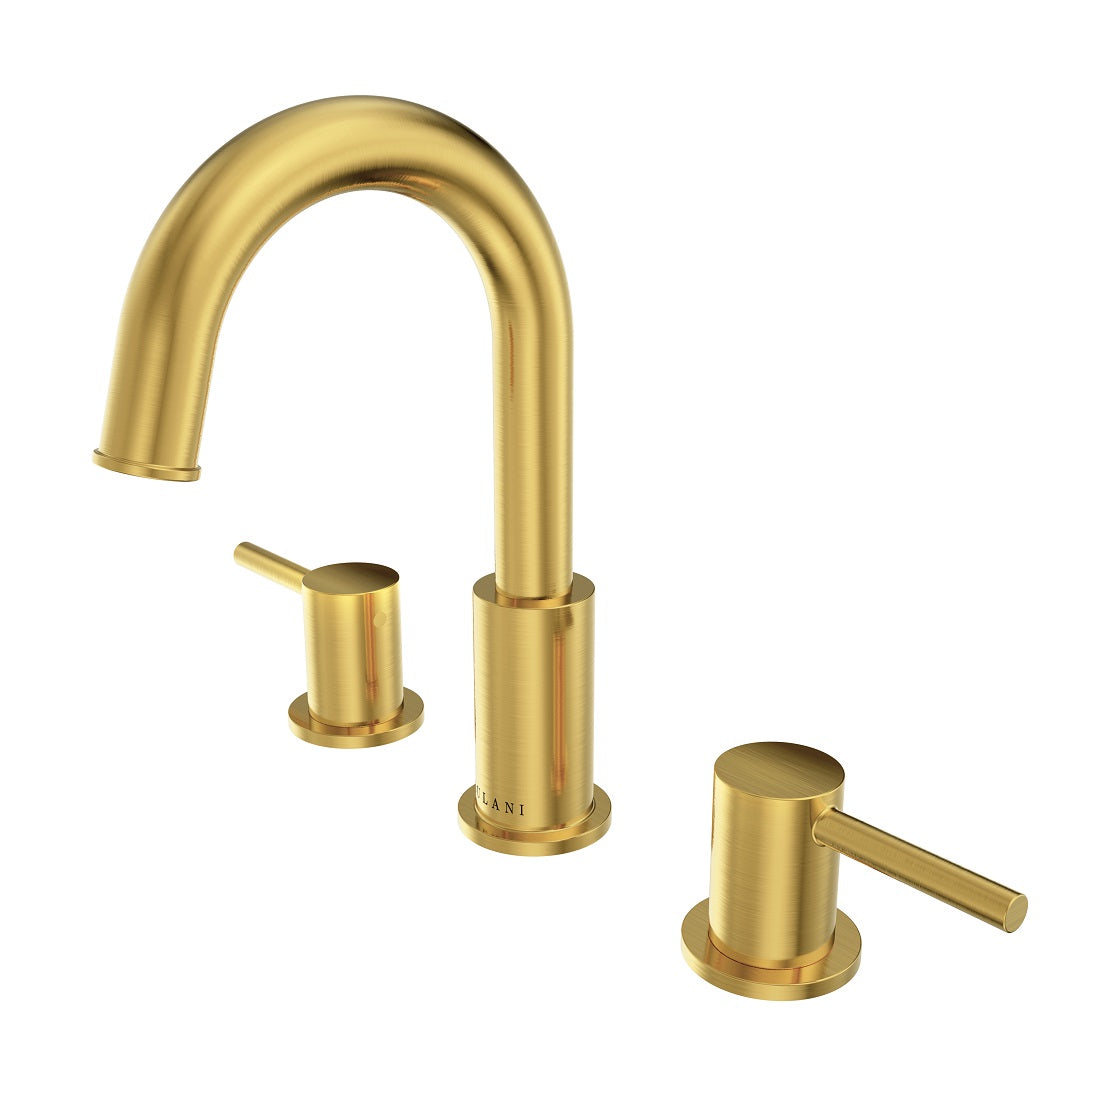 St. Lucia - Widespread Bathroom Faucet